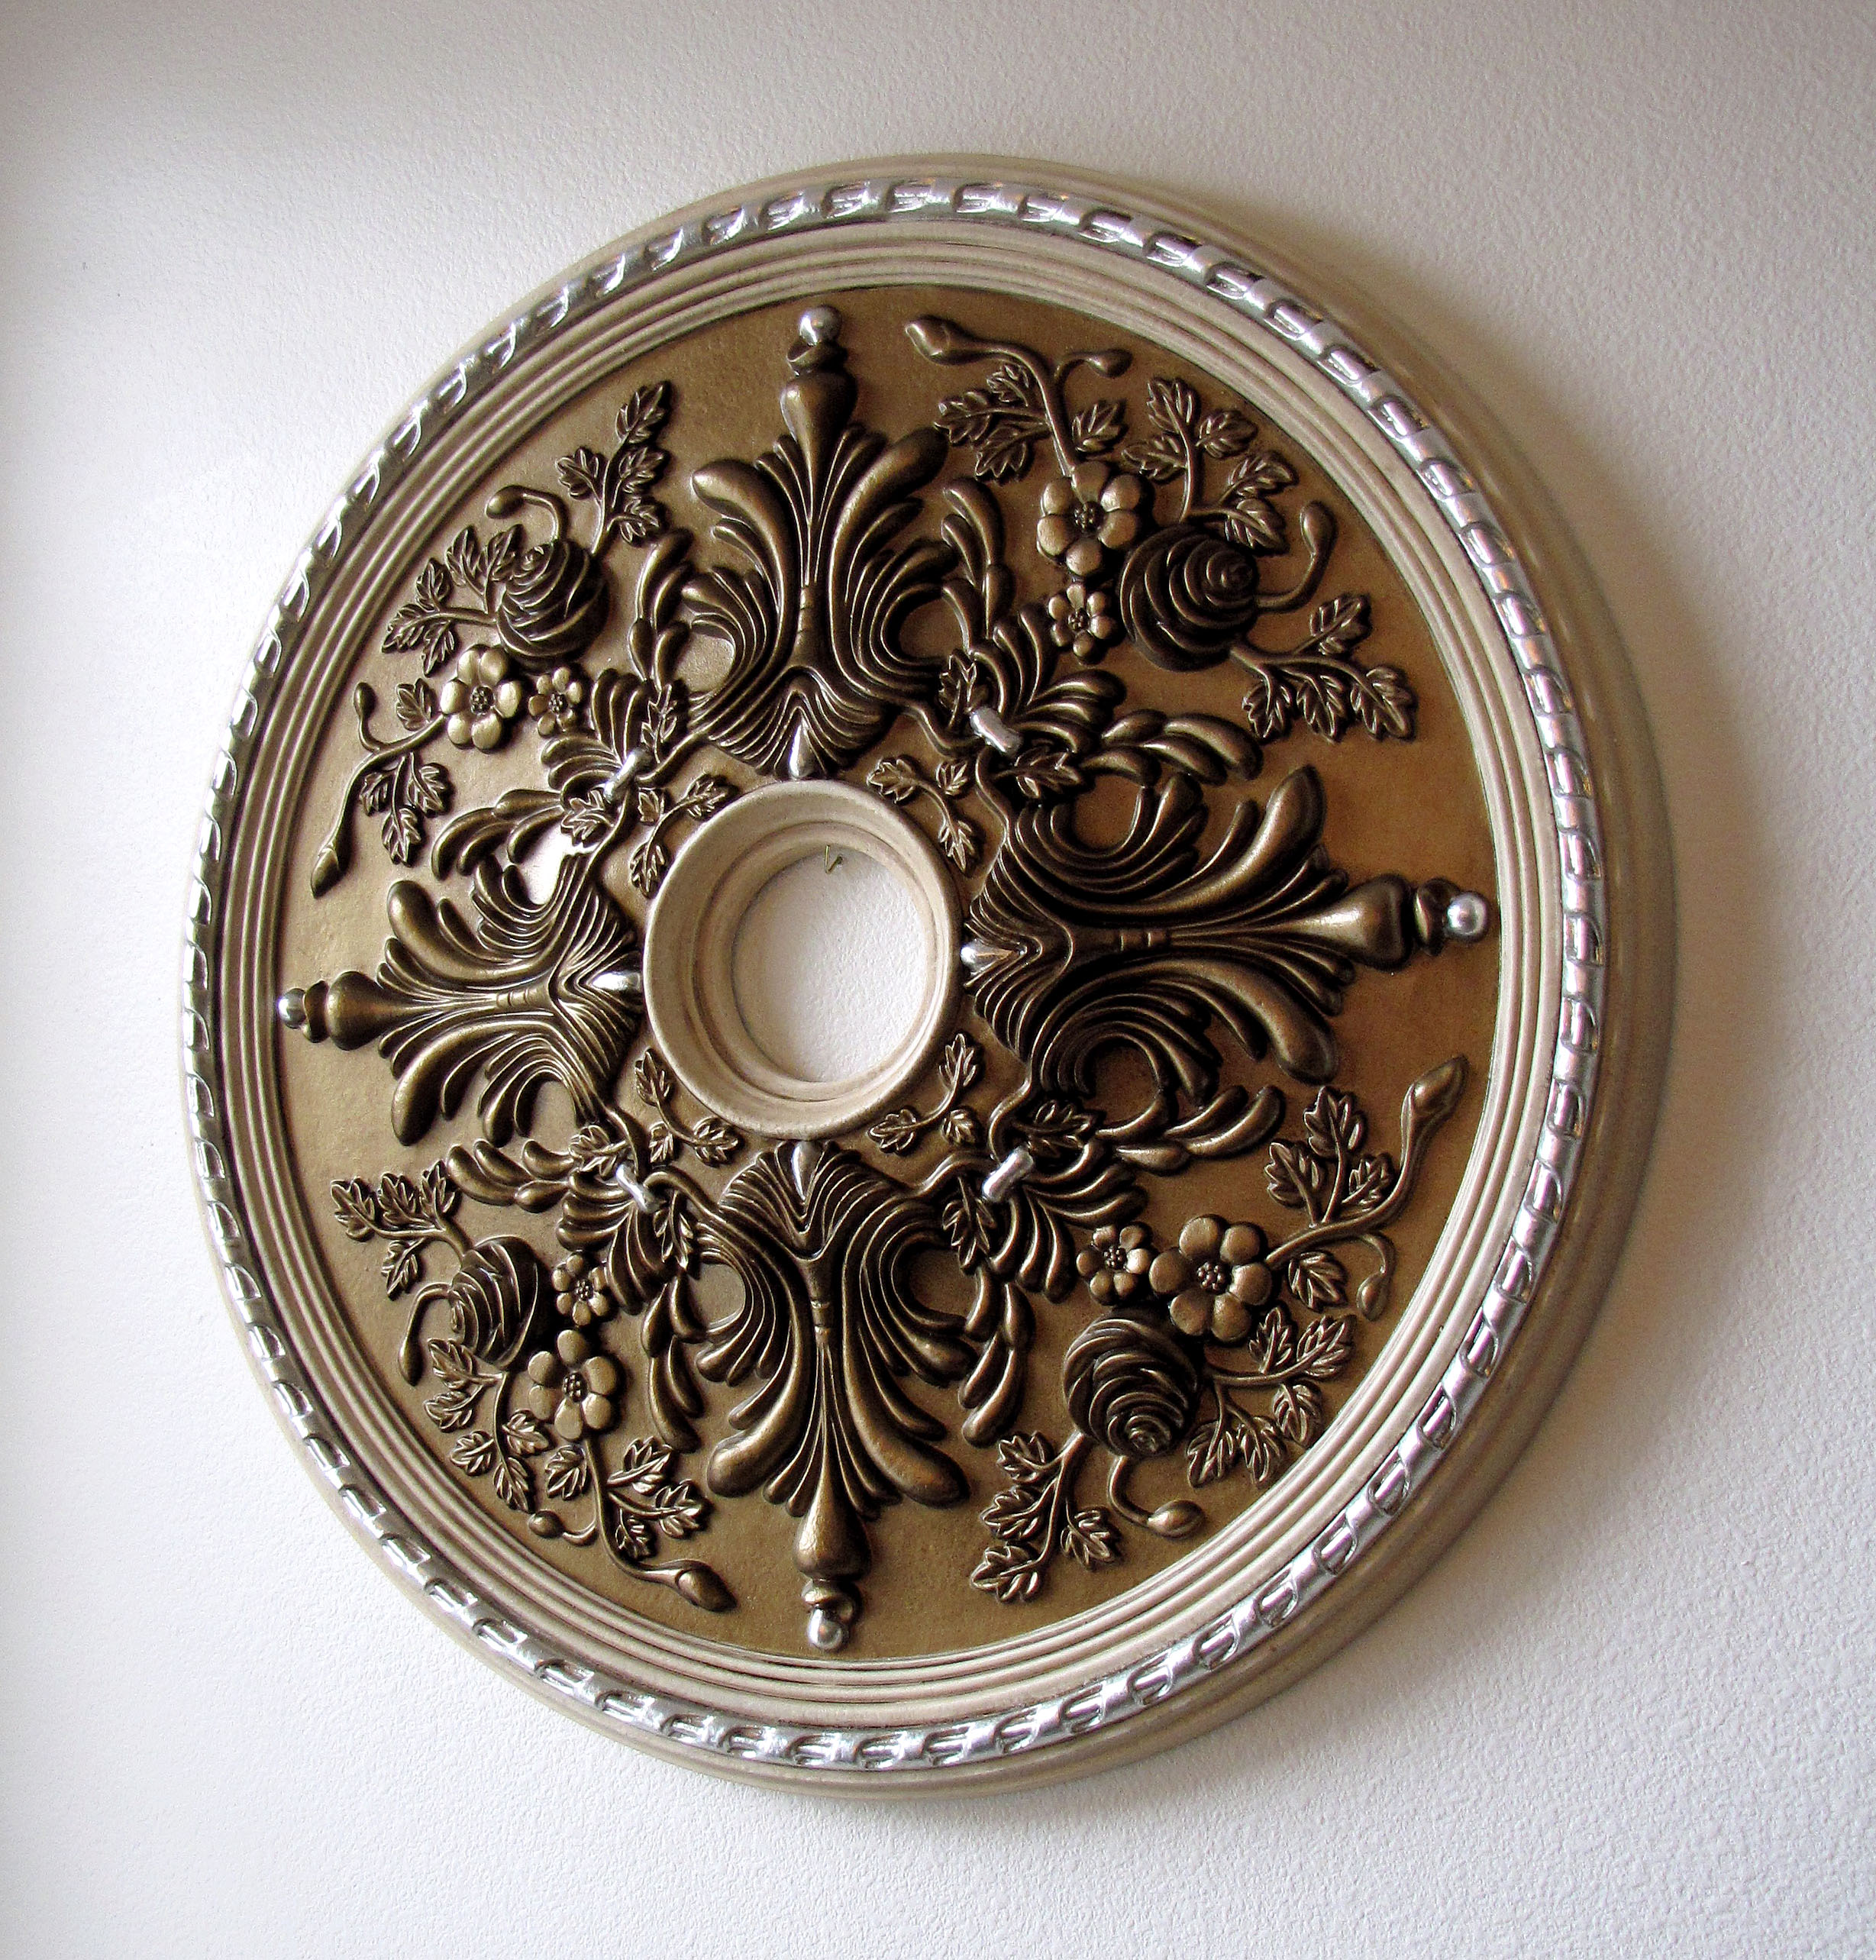 ceiling medallion paint ideas - How To Paint a Ceiling Medallion